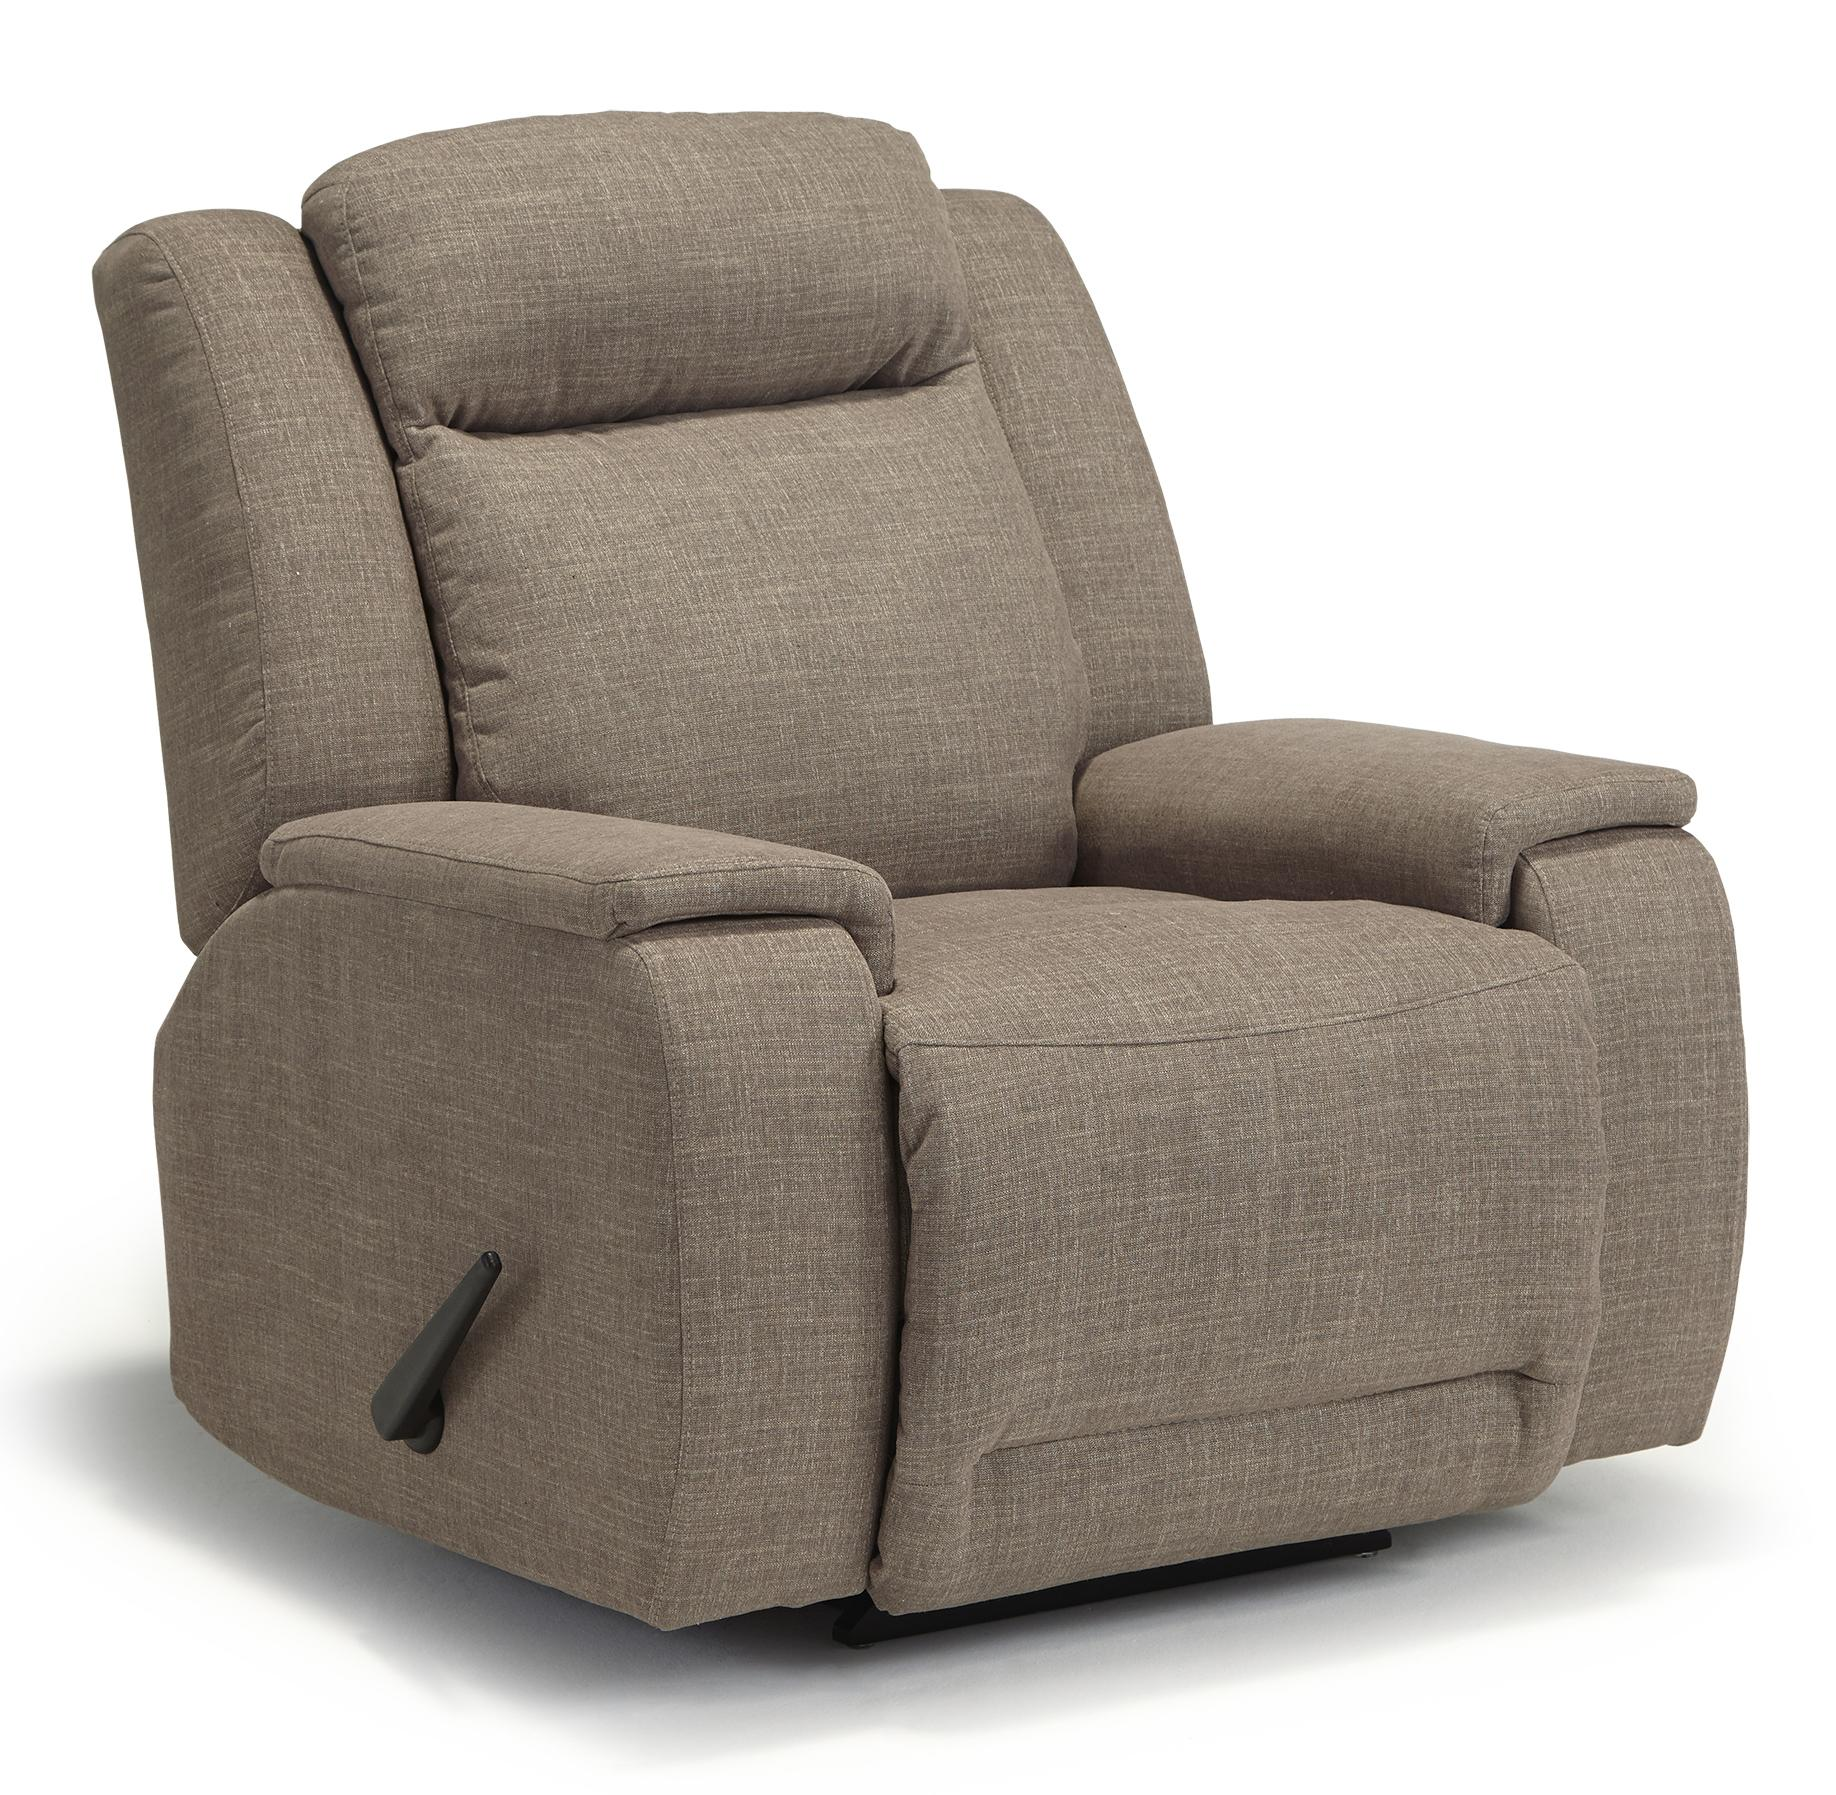 Best Home Furnishings Hardisty Swivel Rocker Recliner - Item Number: 6N89-24699